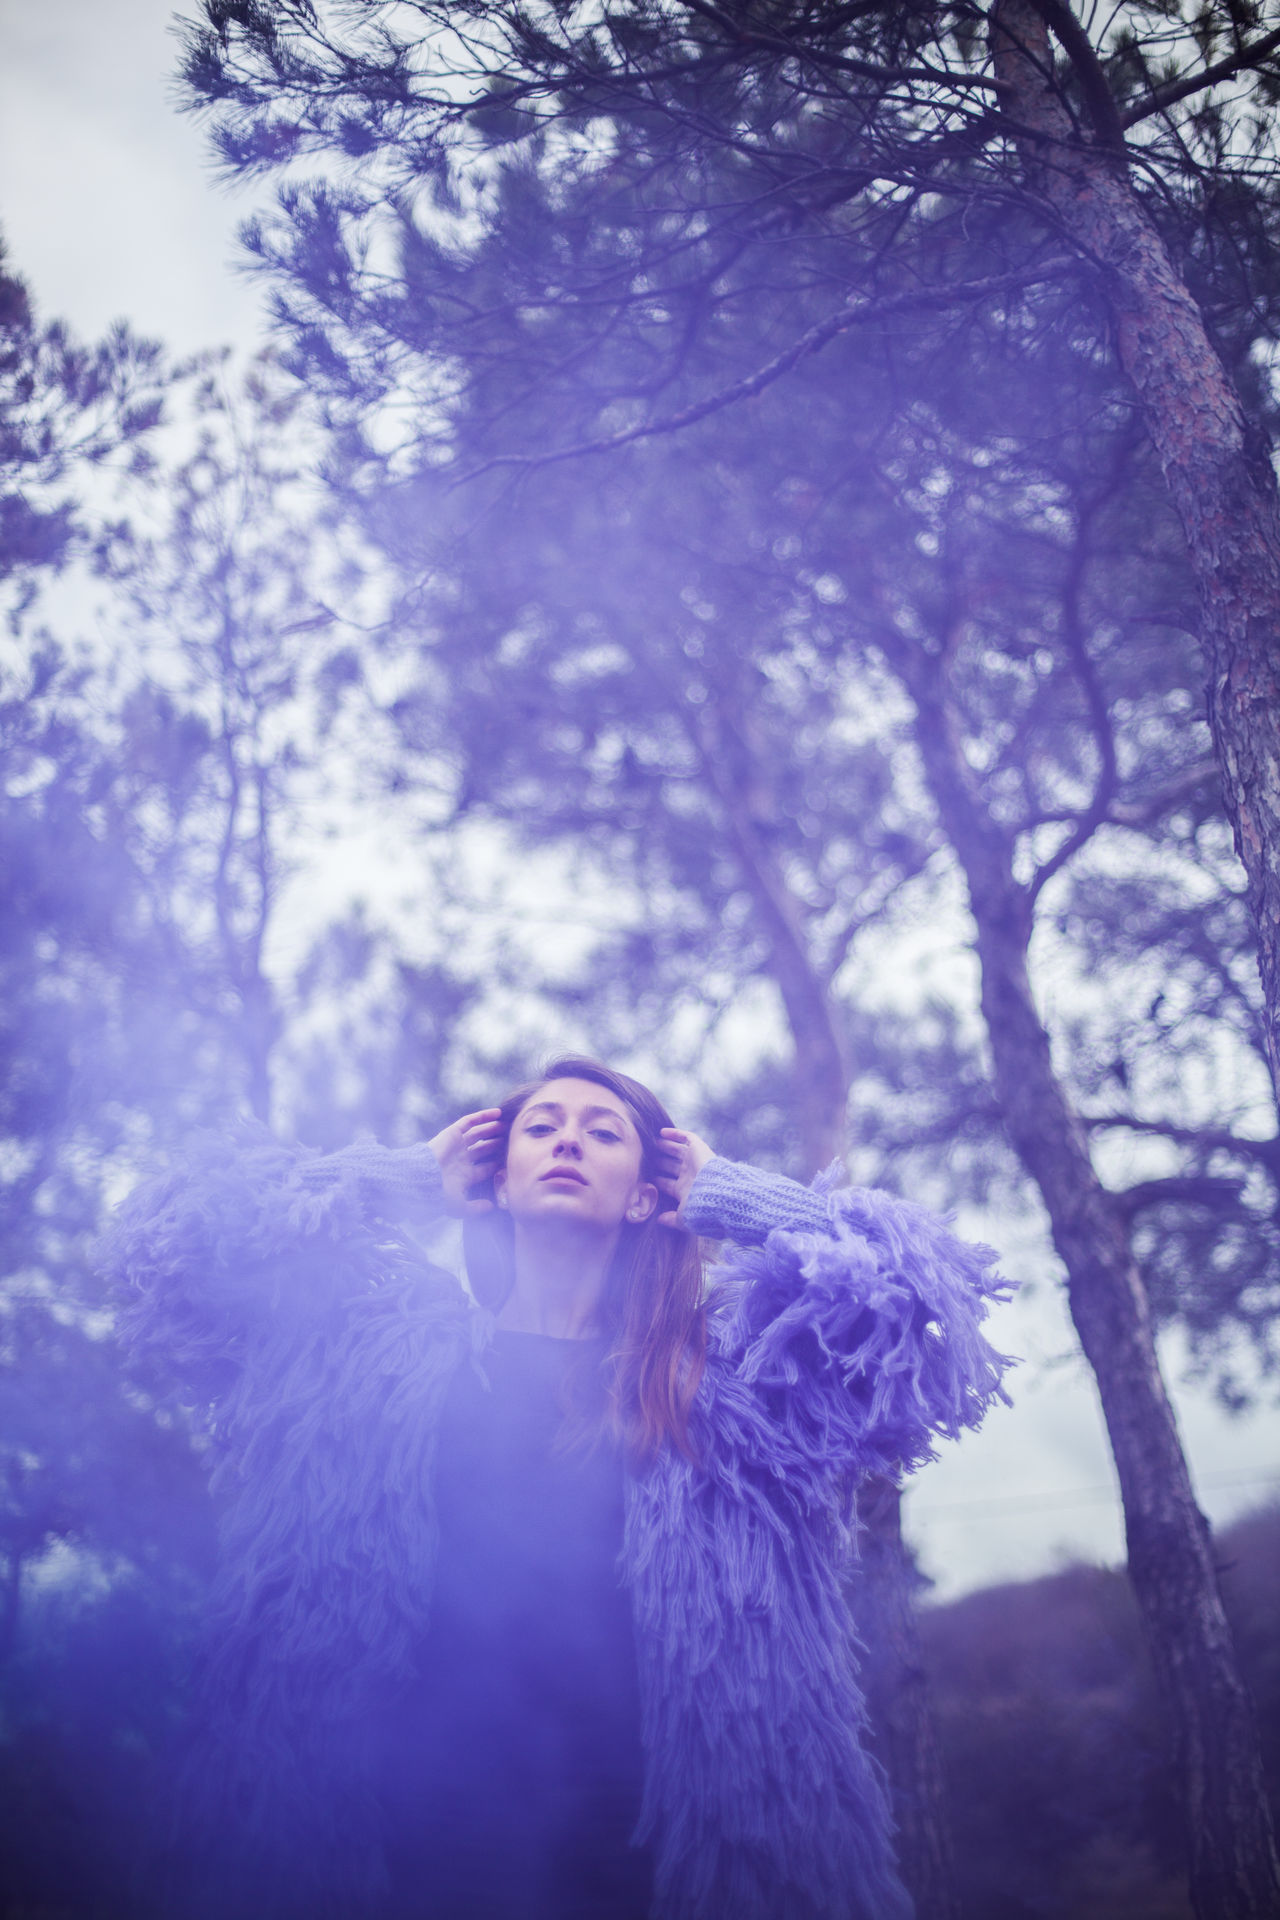 Portrait of woman standing amidst purple smoke against trees